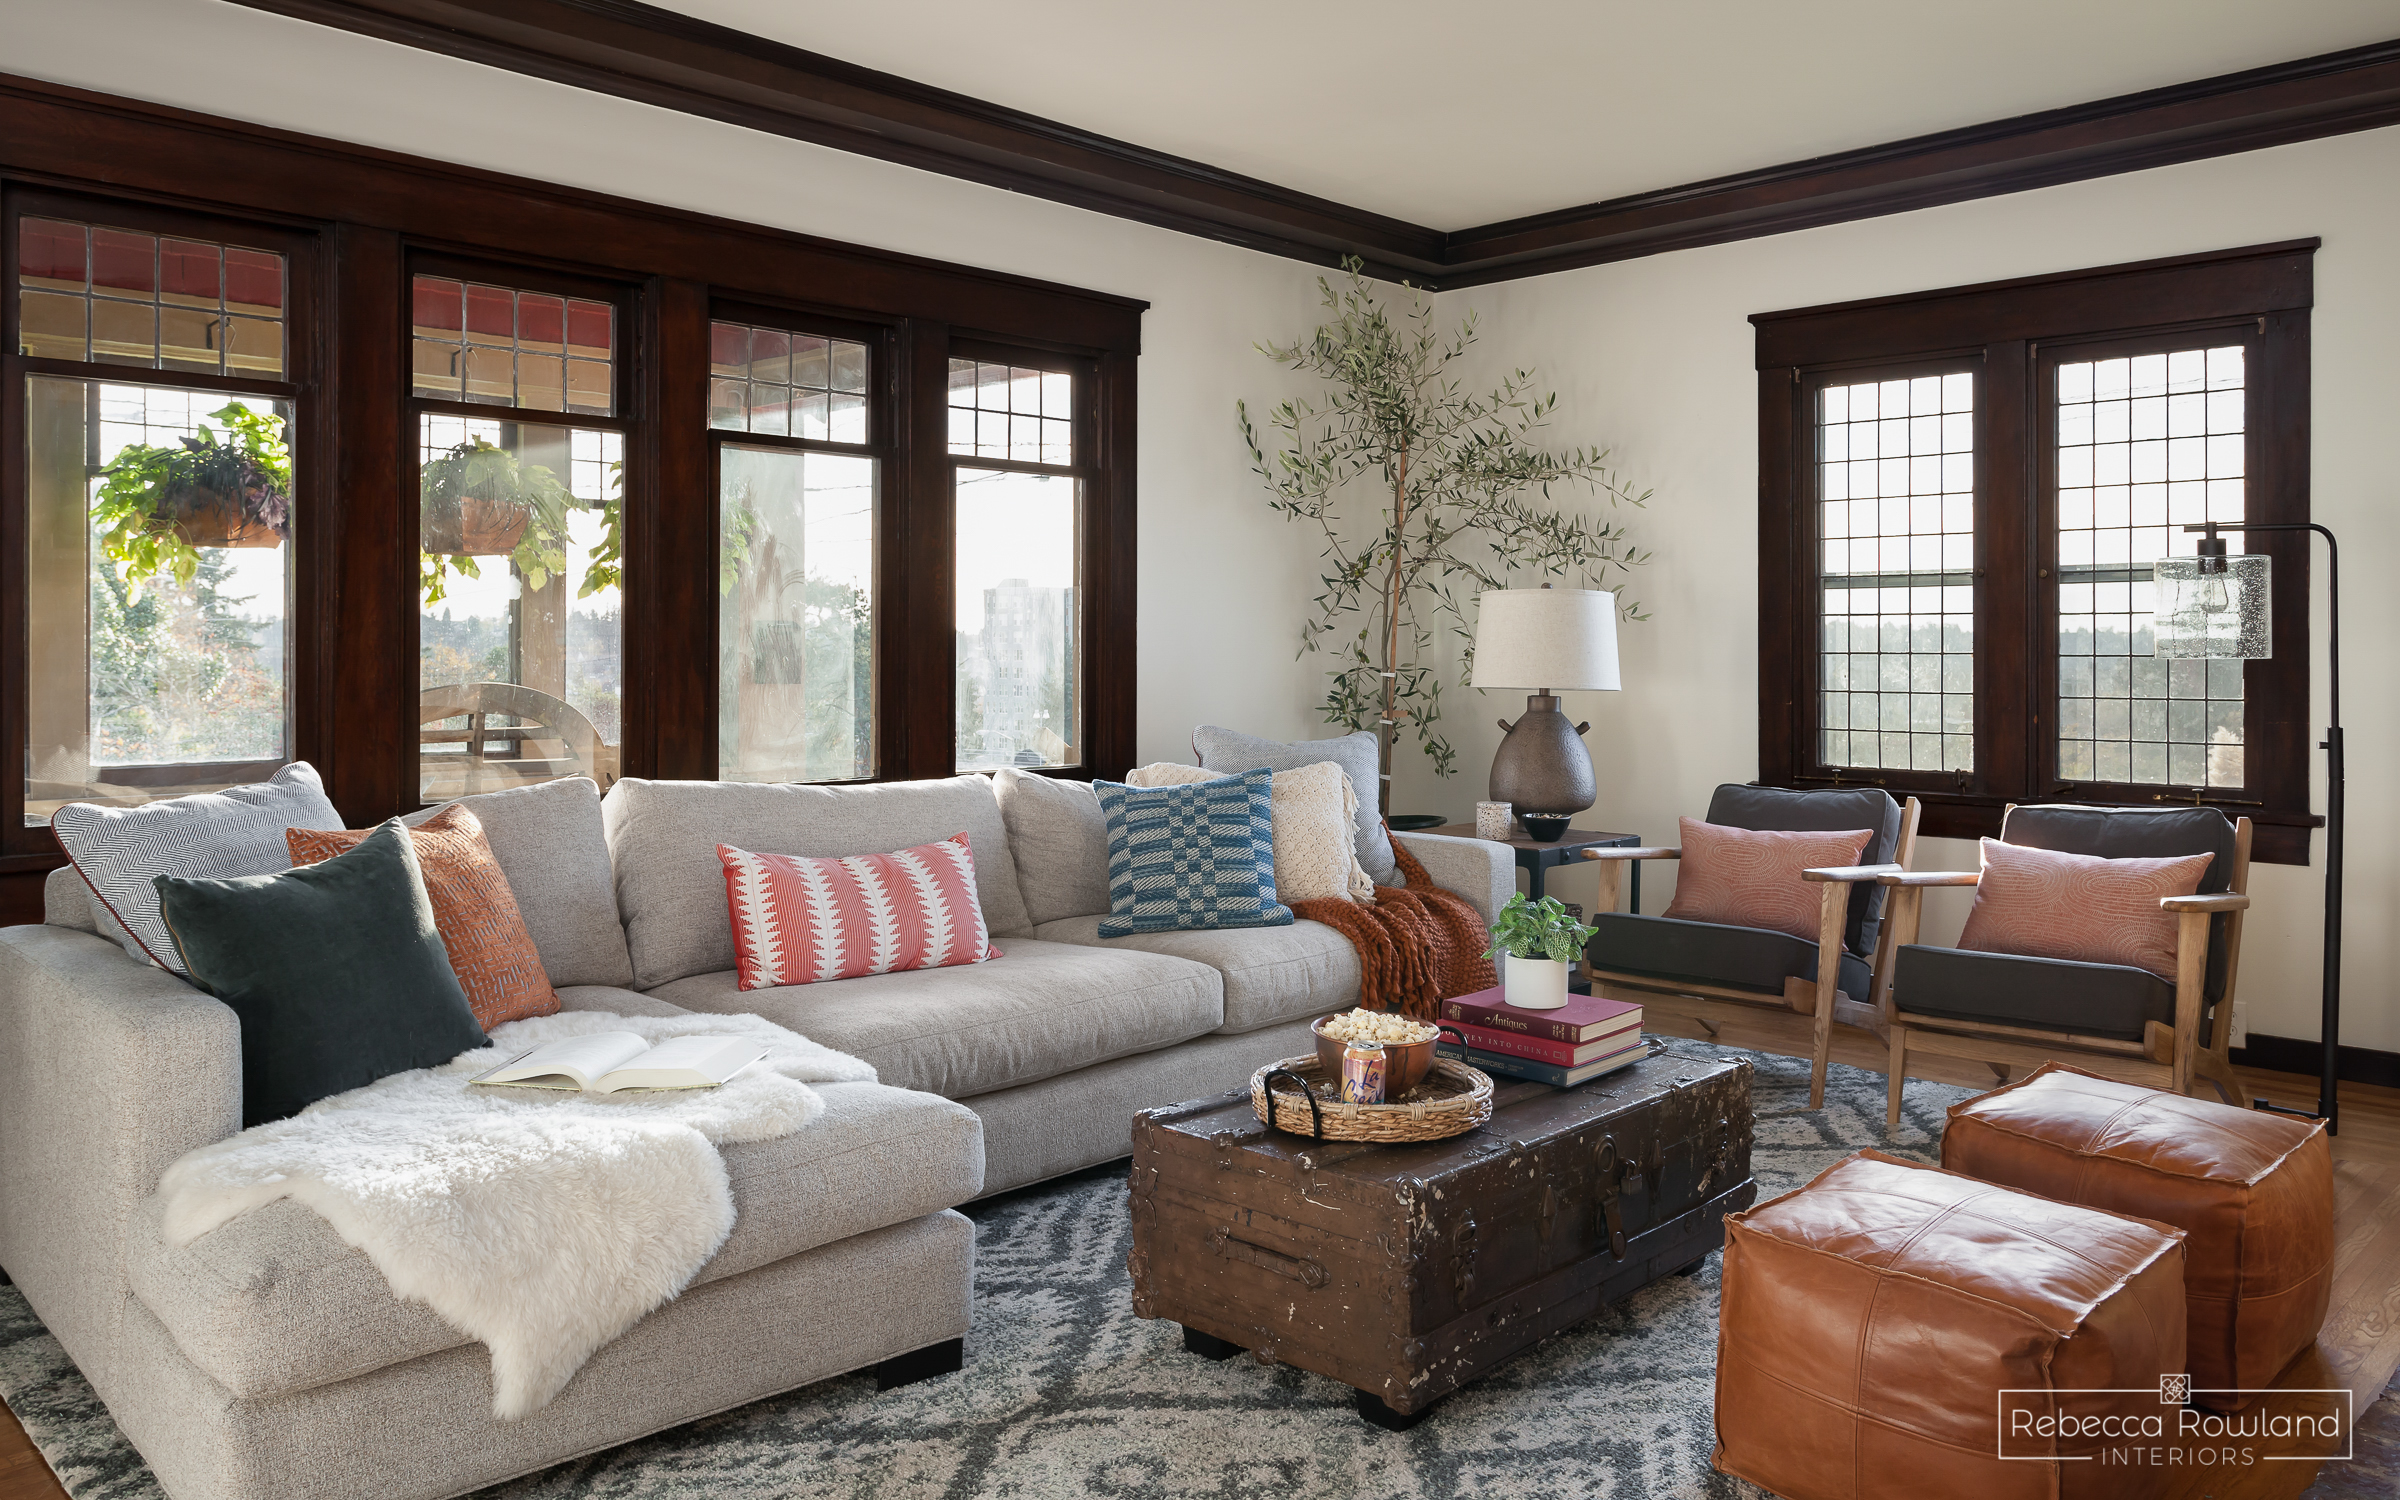 The Roosevelt Craftsman Living Room Reveal. Design by Rebecca Rowland Interiors. Photograph by Julie Mannell.